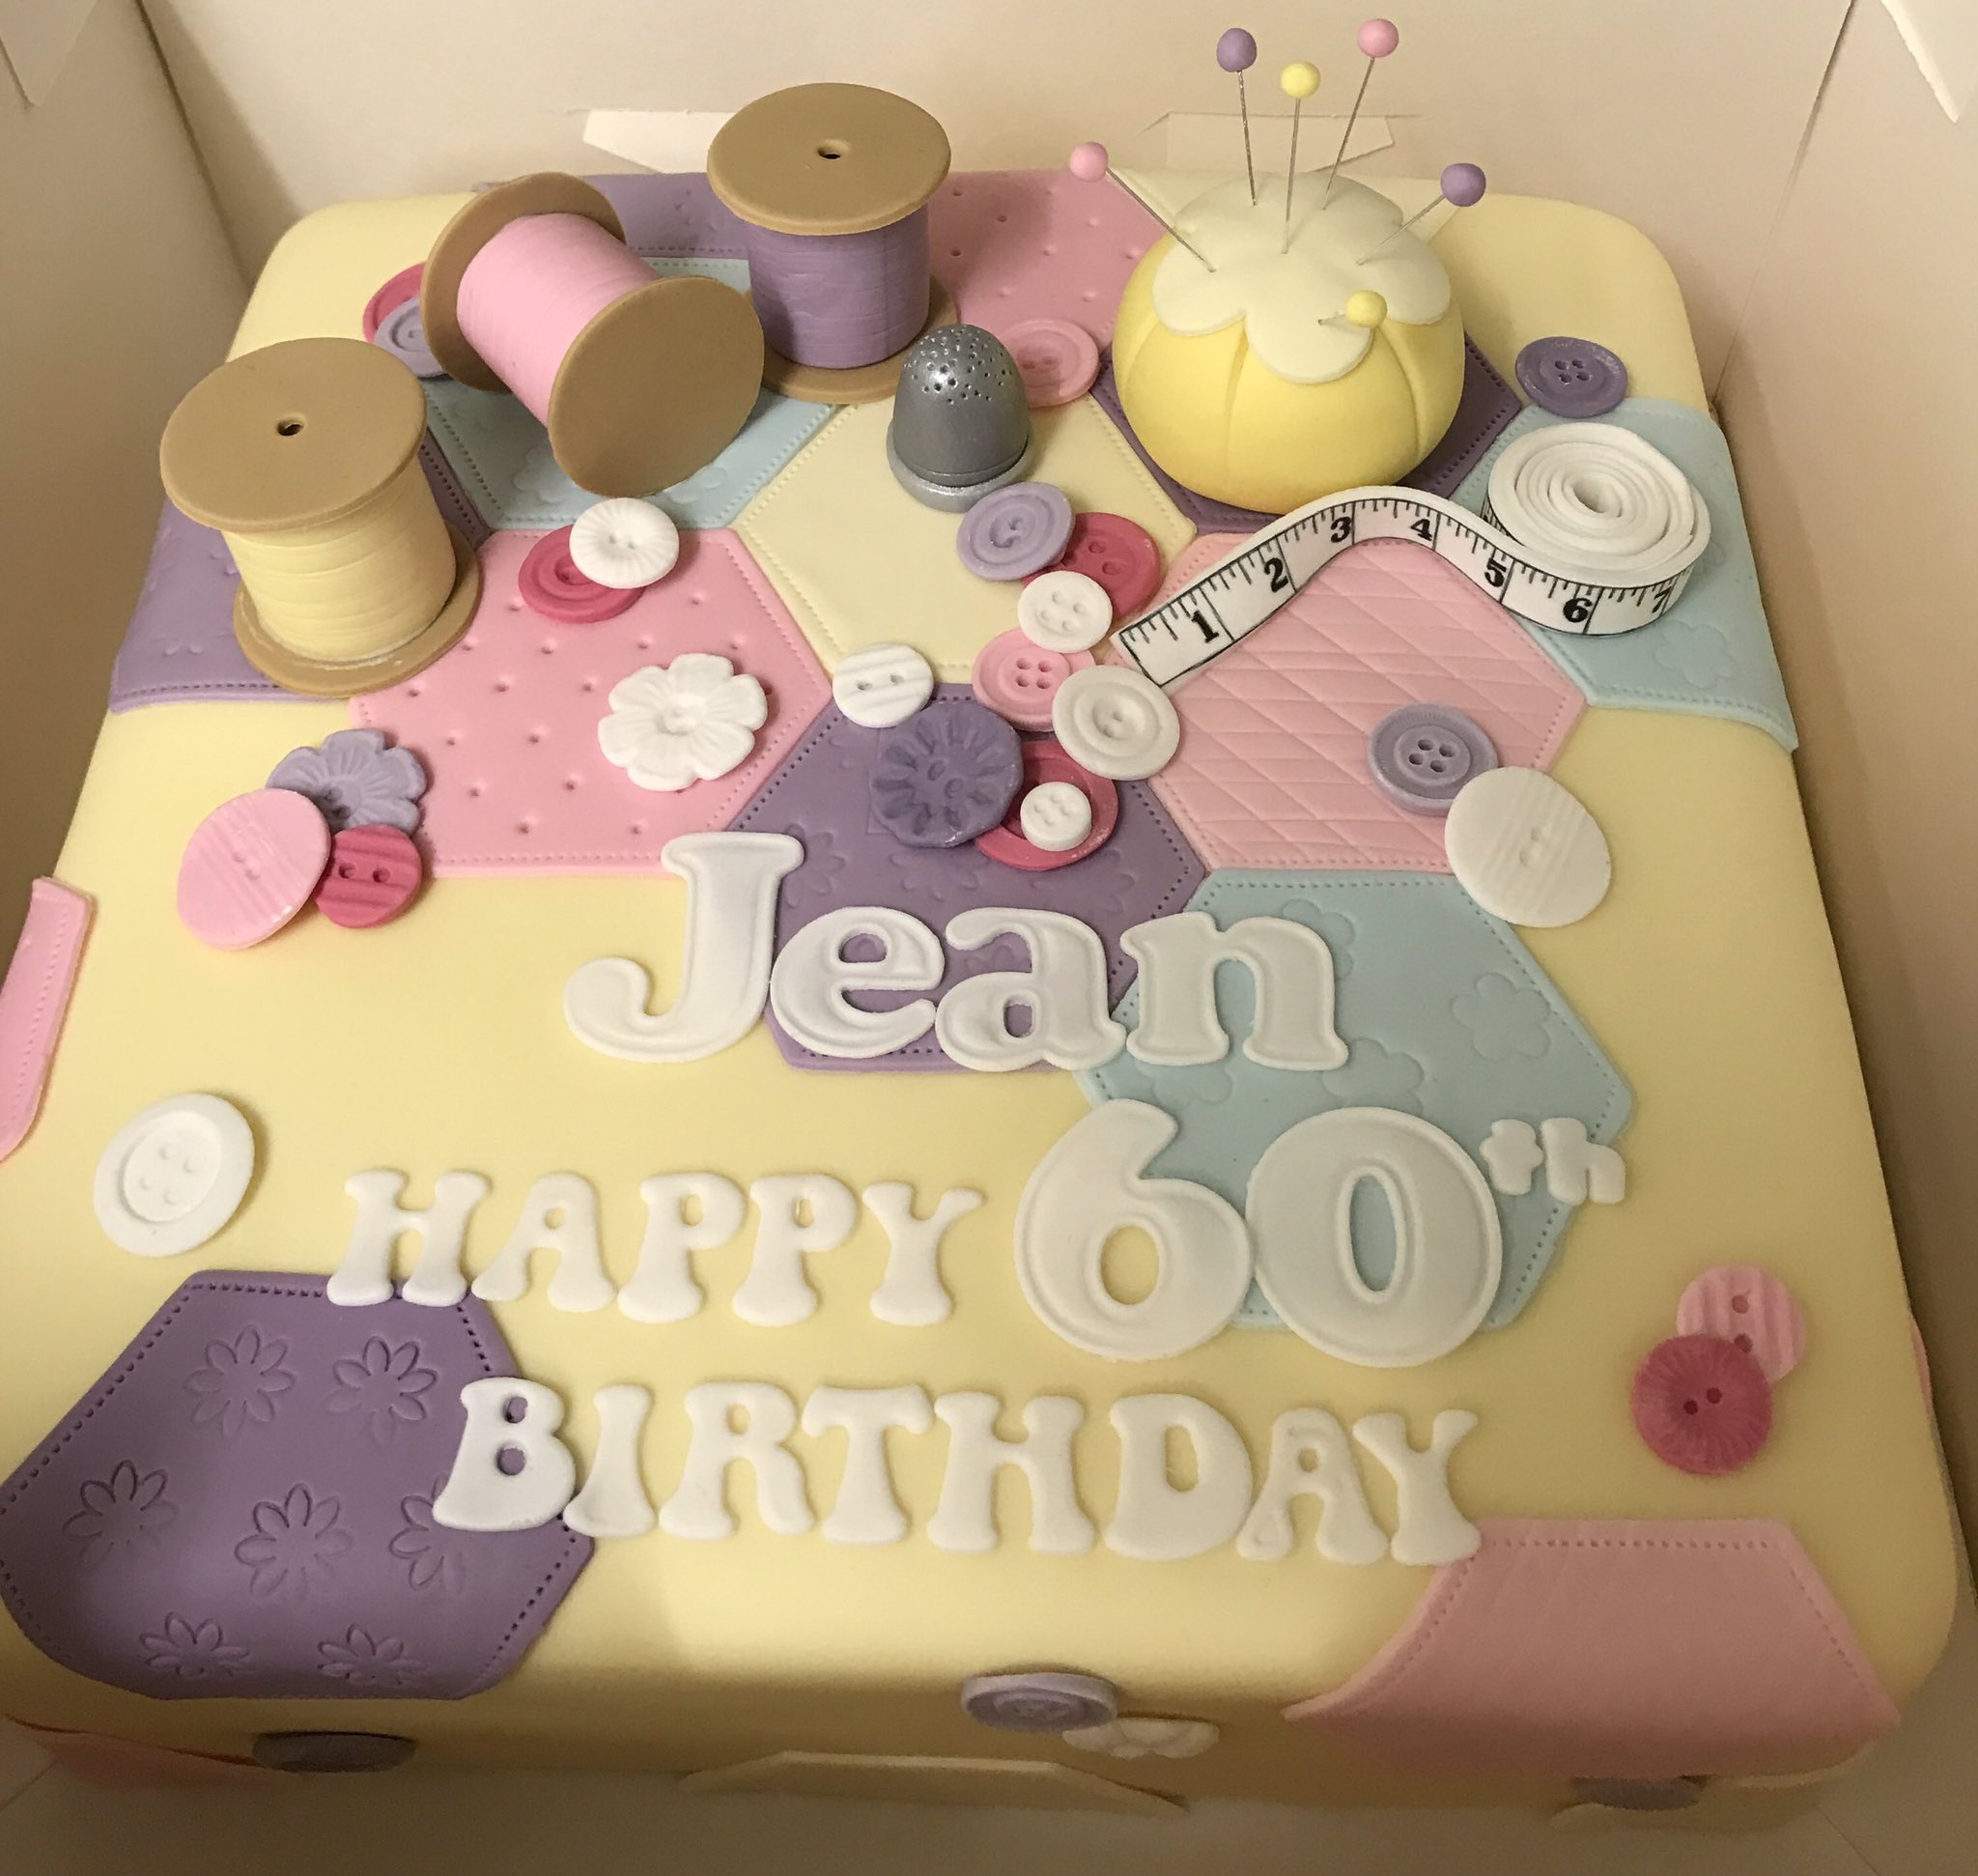 Wedges Bakery On Twitter Happy Birthday Jean From Everyone At Have A Wonderful Day Birthdaygirl Celebrationcake Cake